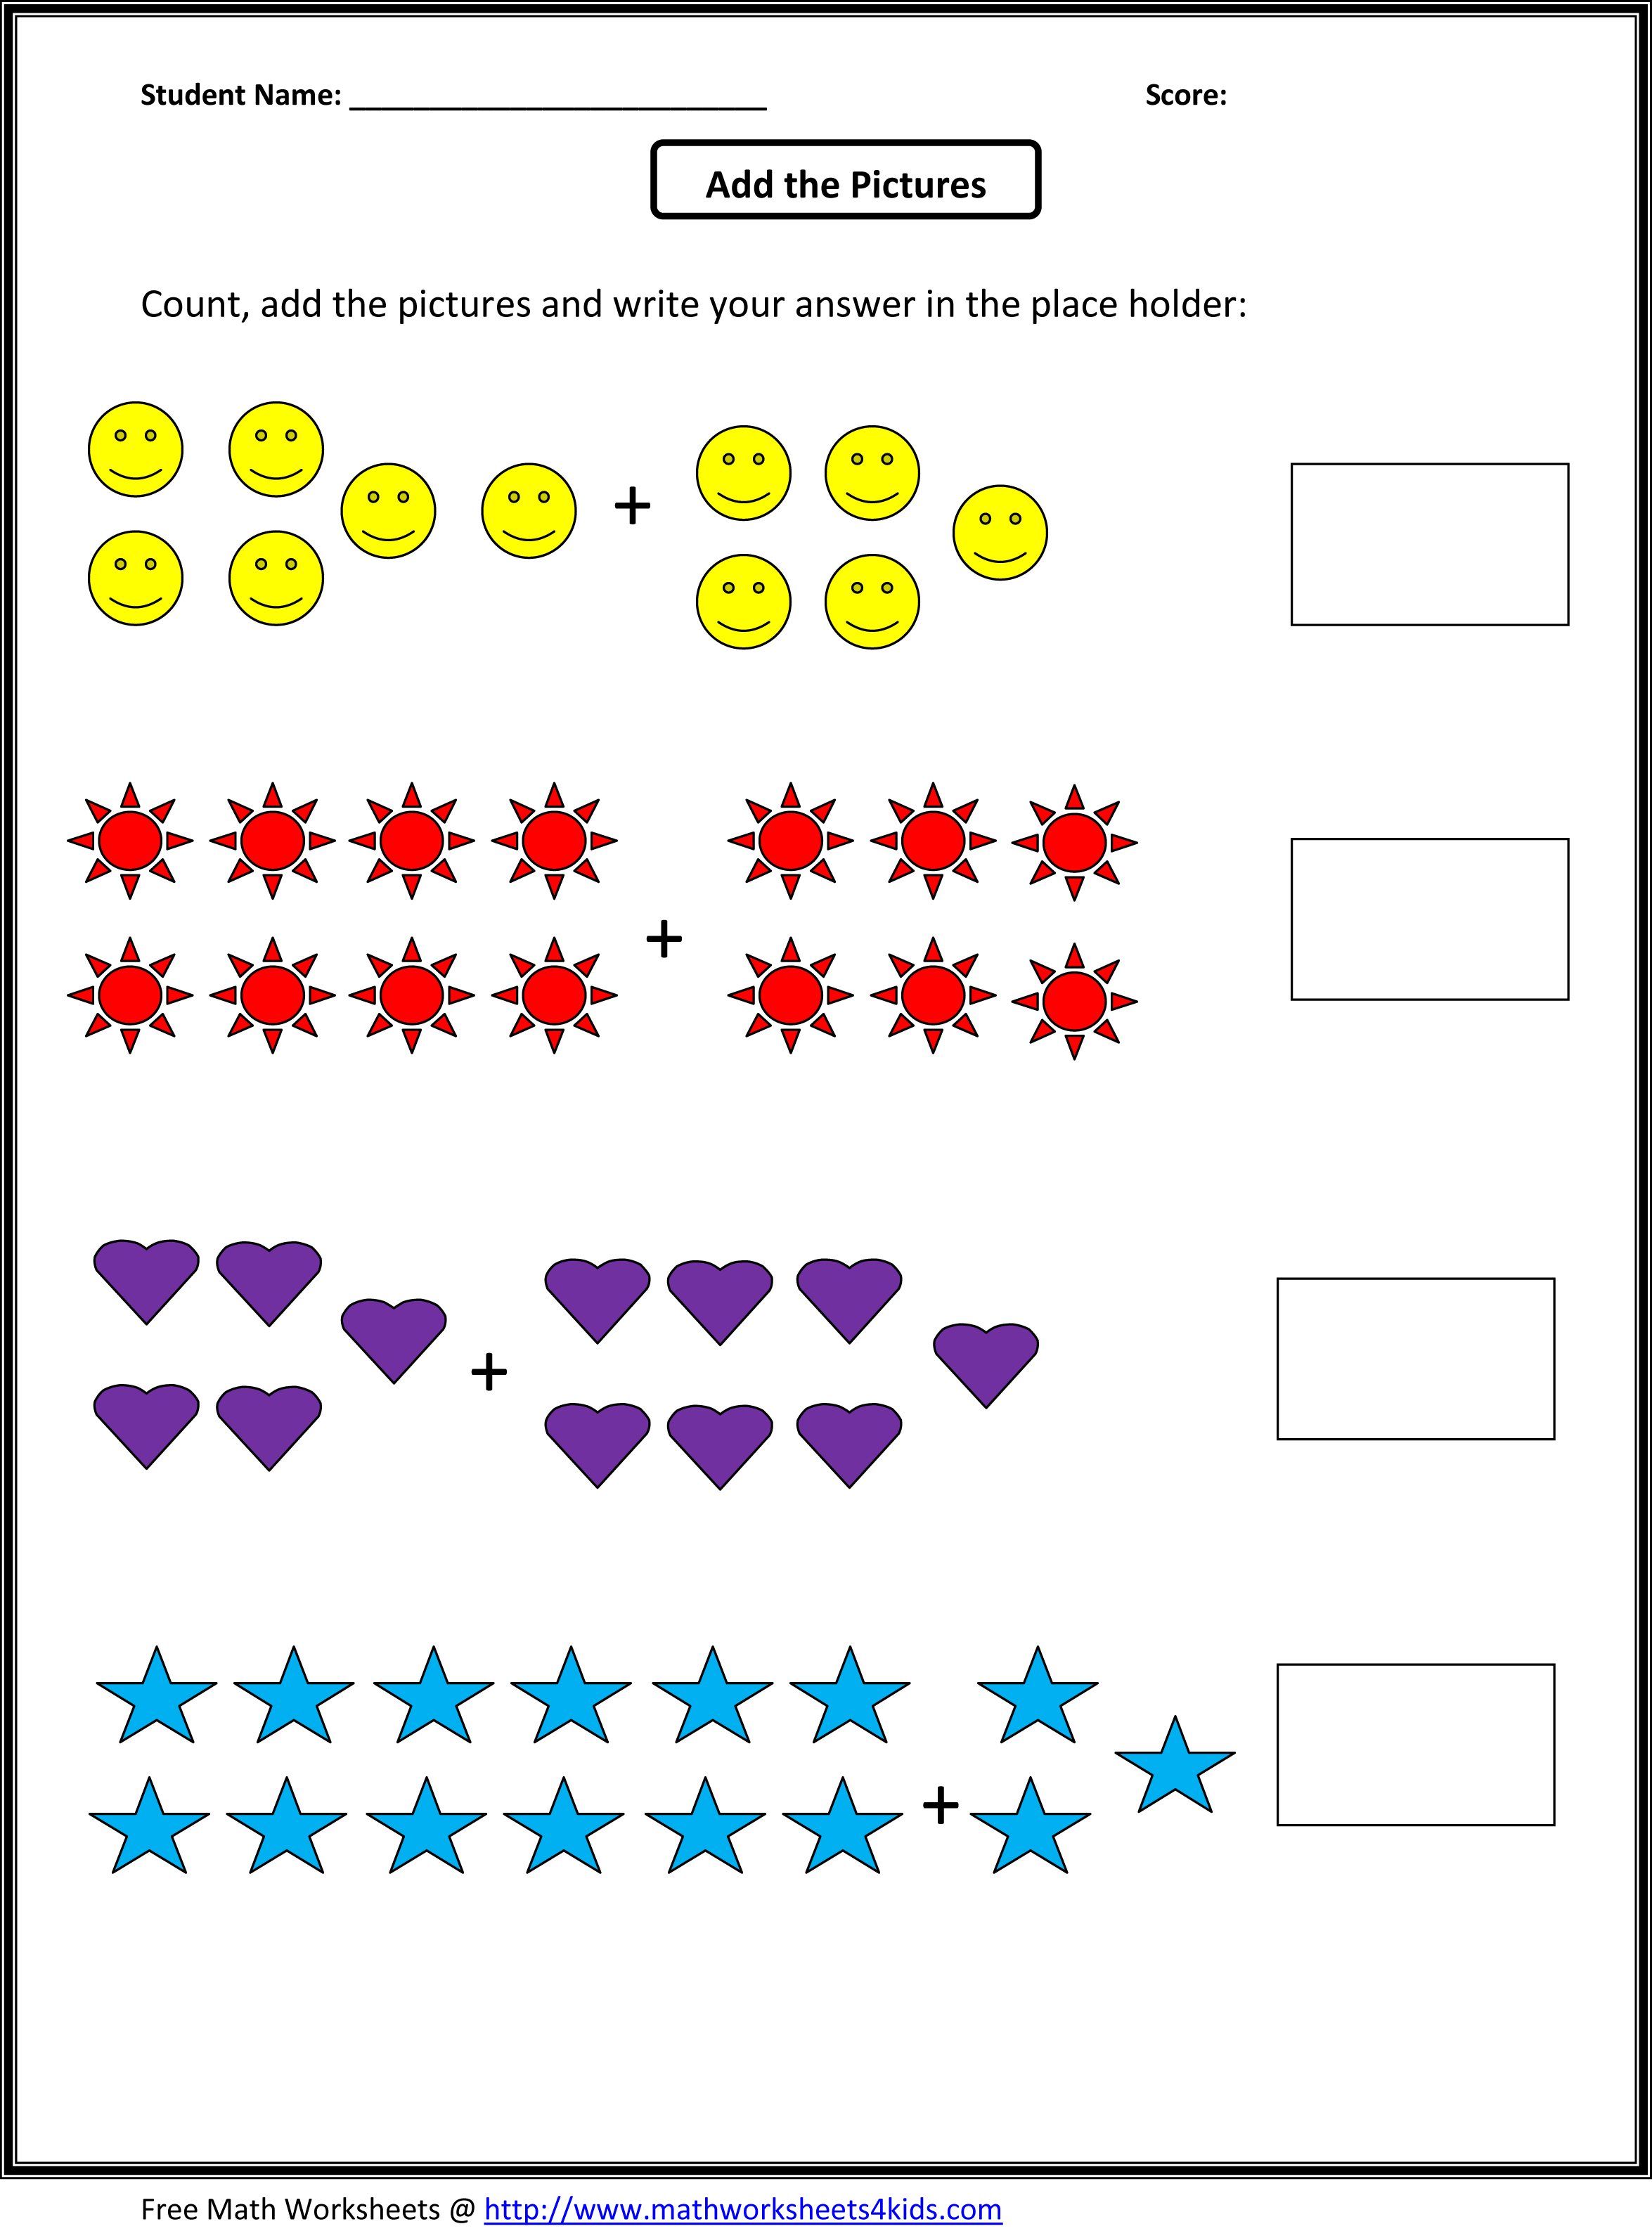 Weirdmailus  Sweet Grade  Maths Worksheet  Reocurent With Exquisite Math Worksheets For St Grade Free  Reocurent With Extraordinary Alphabet B Worksheet Also Comparatives Worksheets In Addition Worksheet Of Preposition And Teachers Websites For Worksheets As Well As Reading Worksheet For Grade  Additionally Grade  Printable Math Worksheets From Reocurentcom With Weirdmailus  Exquisite Grade  Maths Worksheet  Reocurent With Extraordinary Math Worksheets For St Grade Free  Reocurent And Sweet Alphabet B Worksheet Also Comparatives Worksheets In Addition Worksheet Of Preposition From Reocurentcom